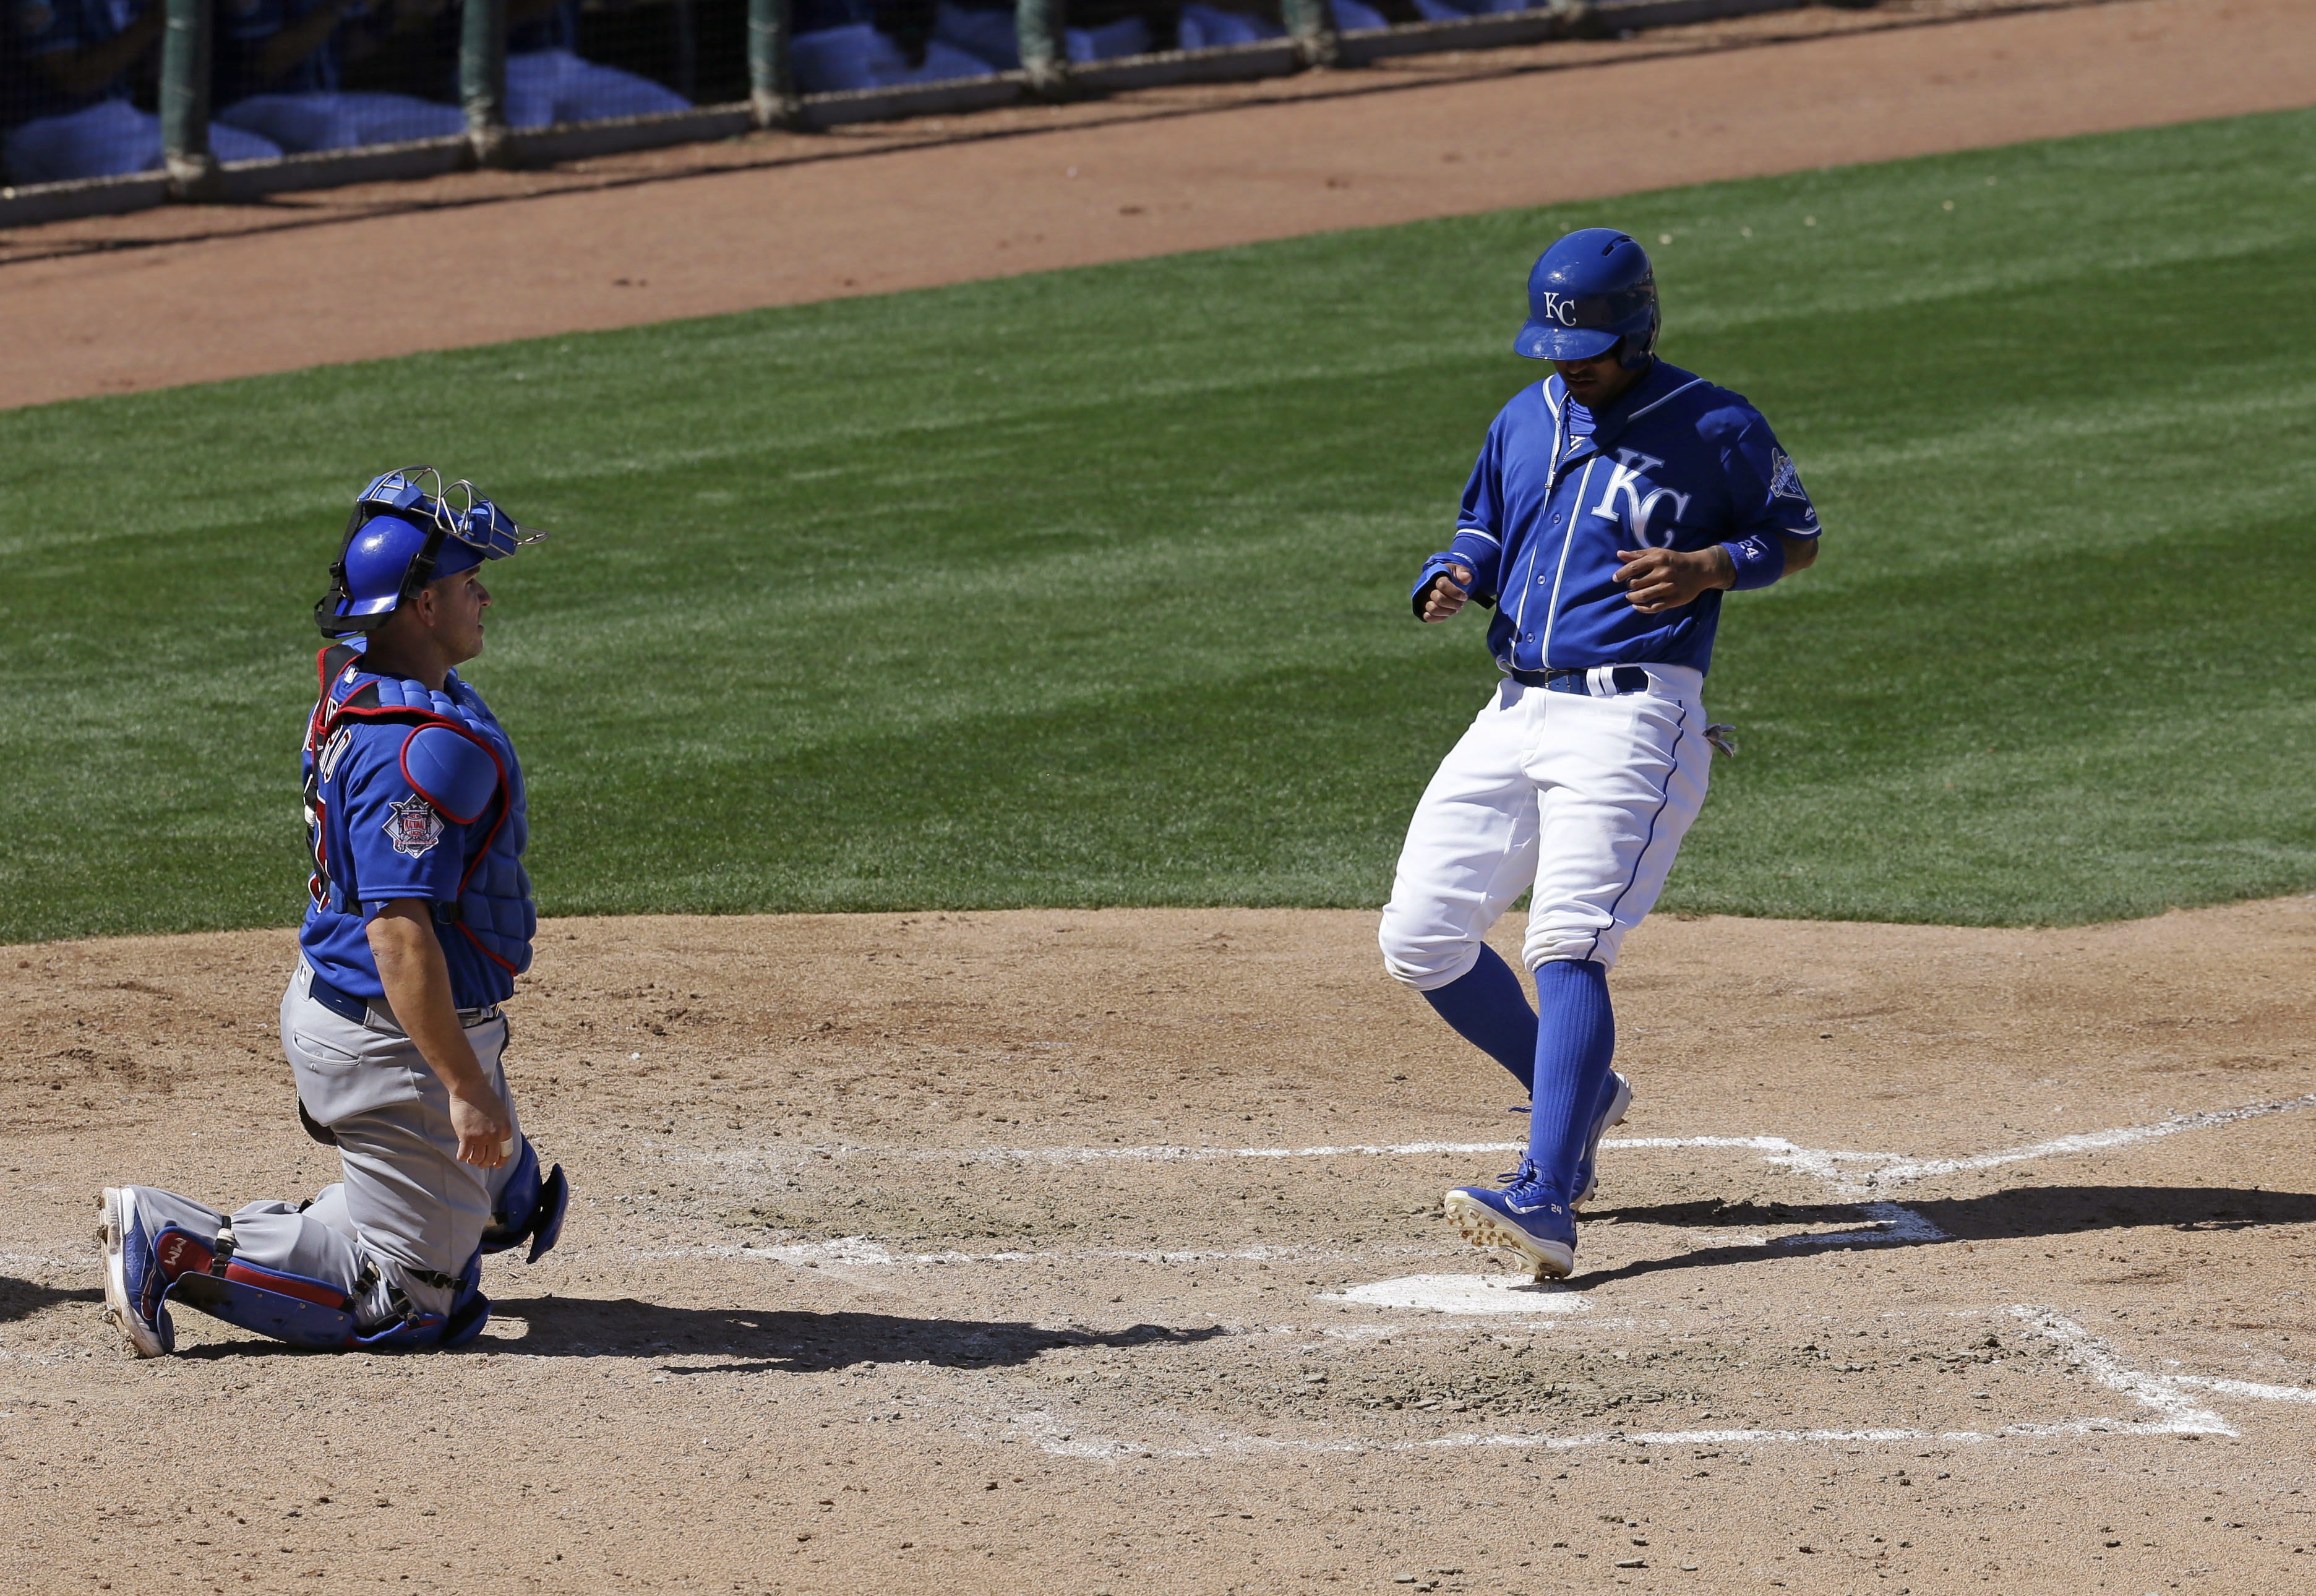 Kansas City Royals' Christian Colon scores in front of Chicago Cubs catcher Miguel Montero during the fifth inning of a spring training baseball game Wednesday, March 16, 2016, in Surprise, Ariz. (AP Photo/Darron Cummings)